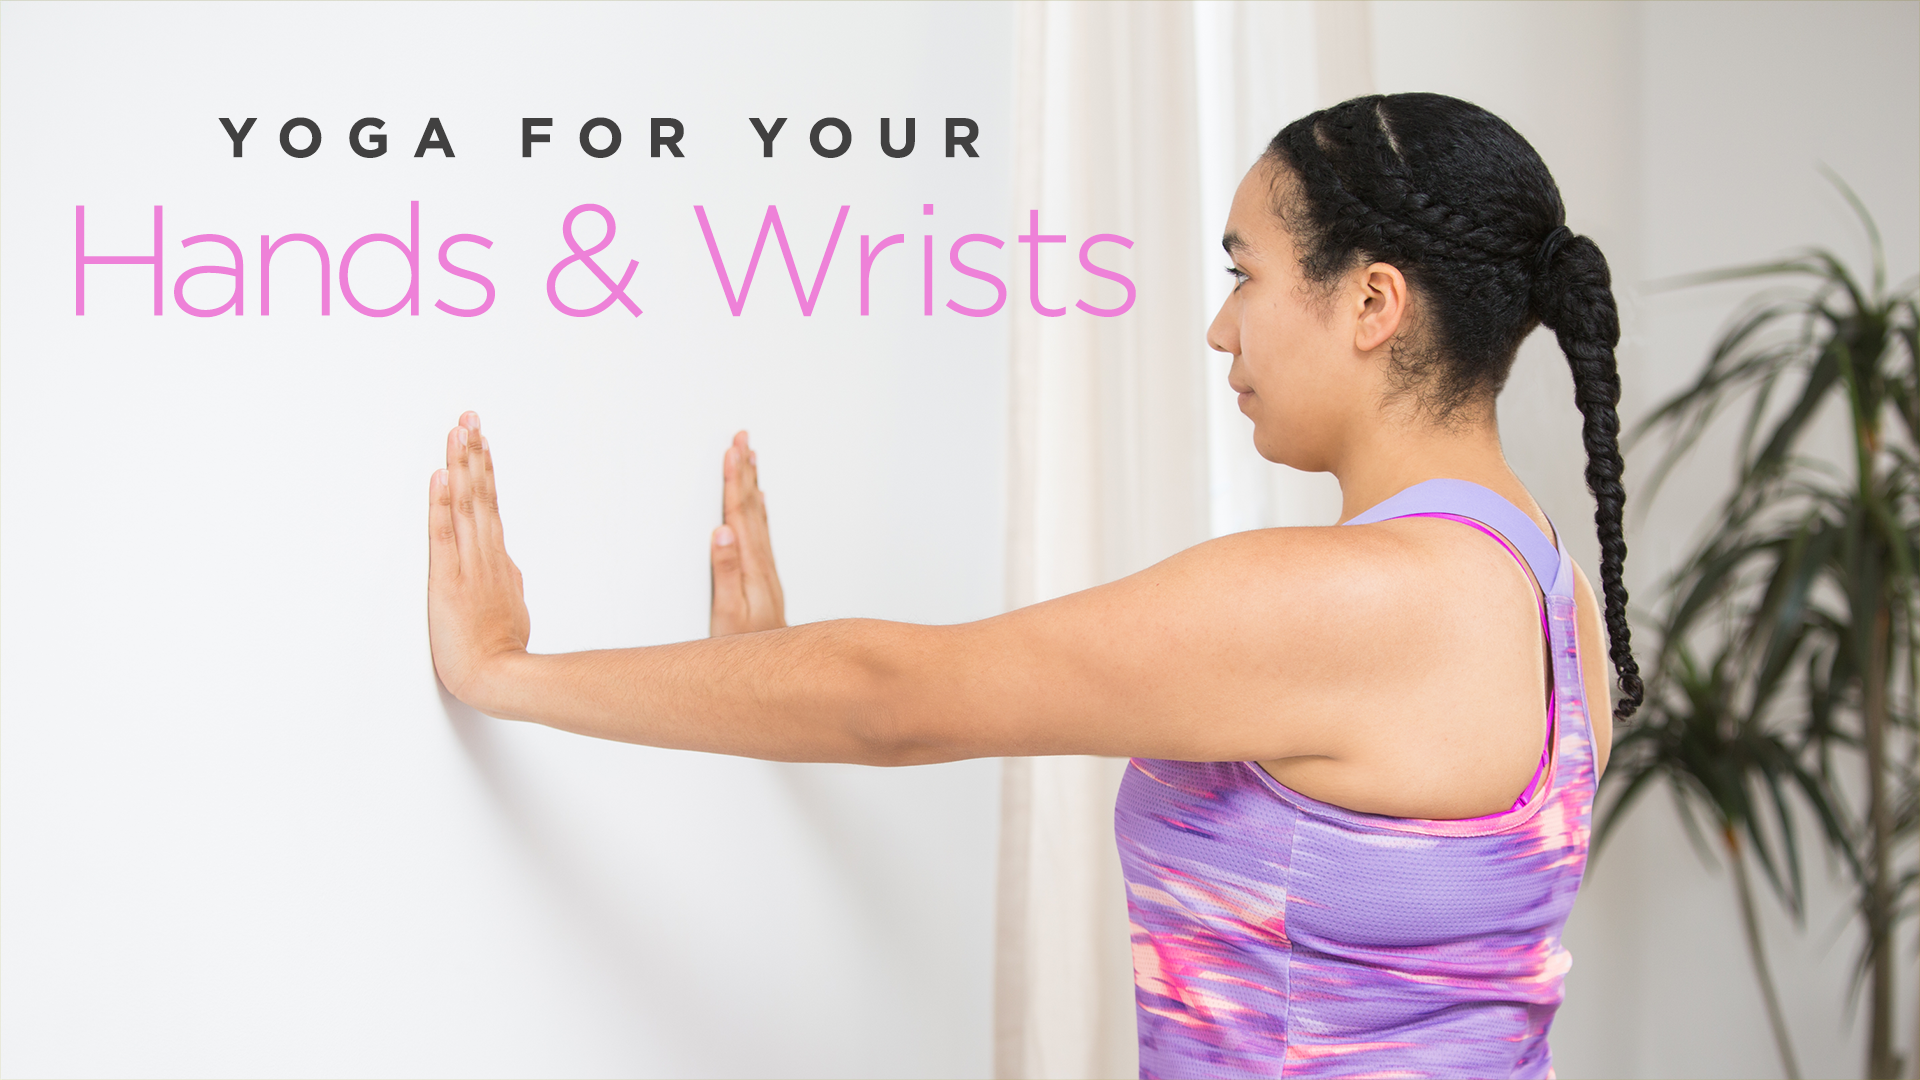 Yoga for Your Hands and Wrists | Yoga International